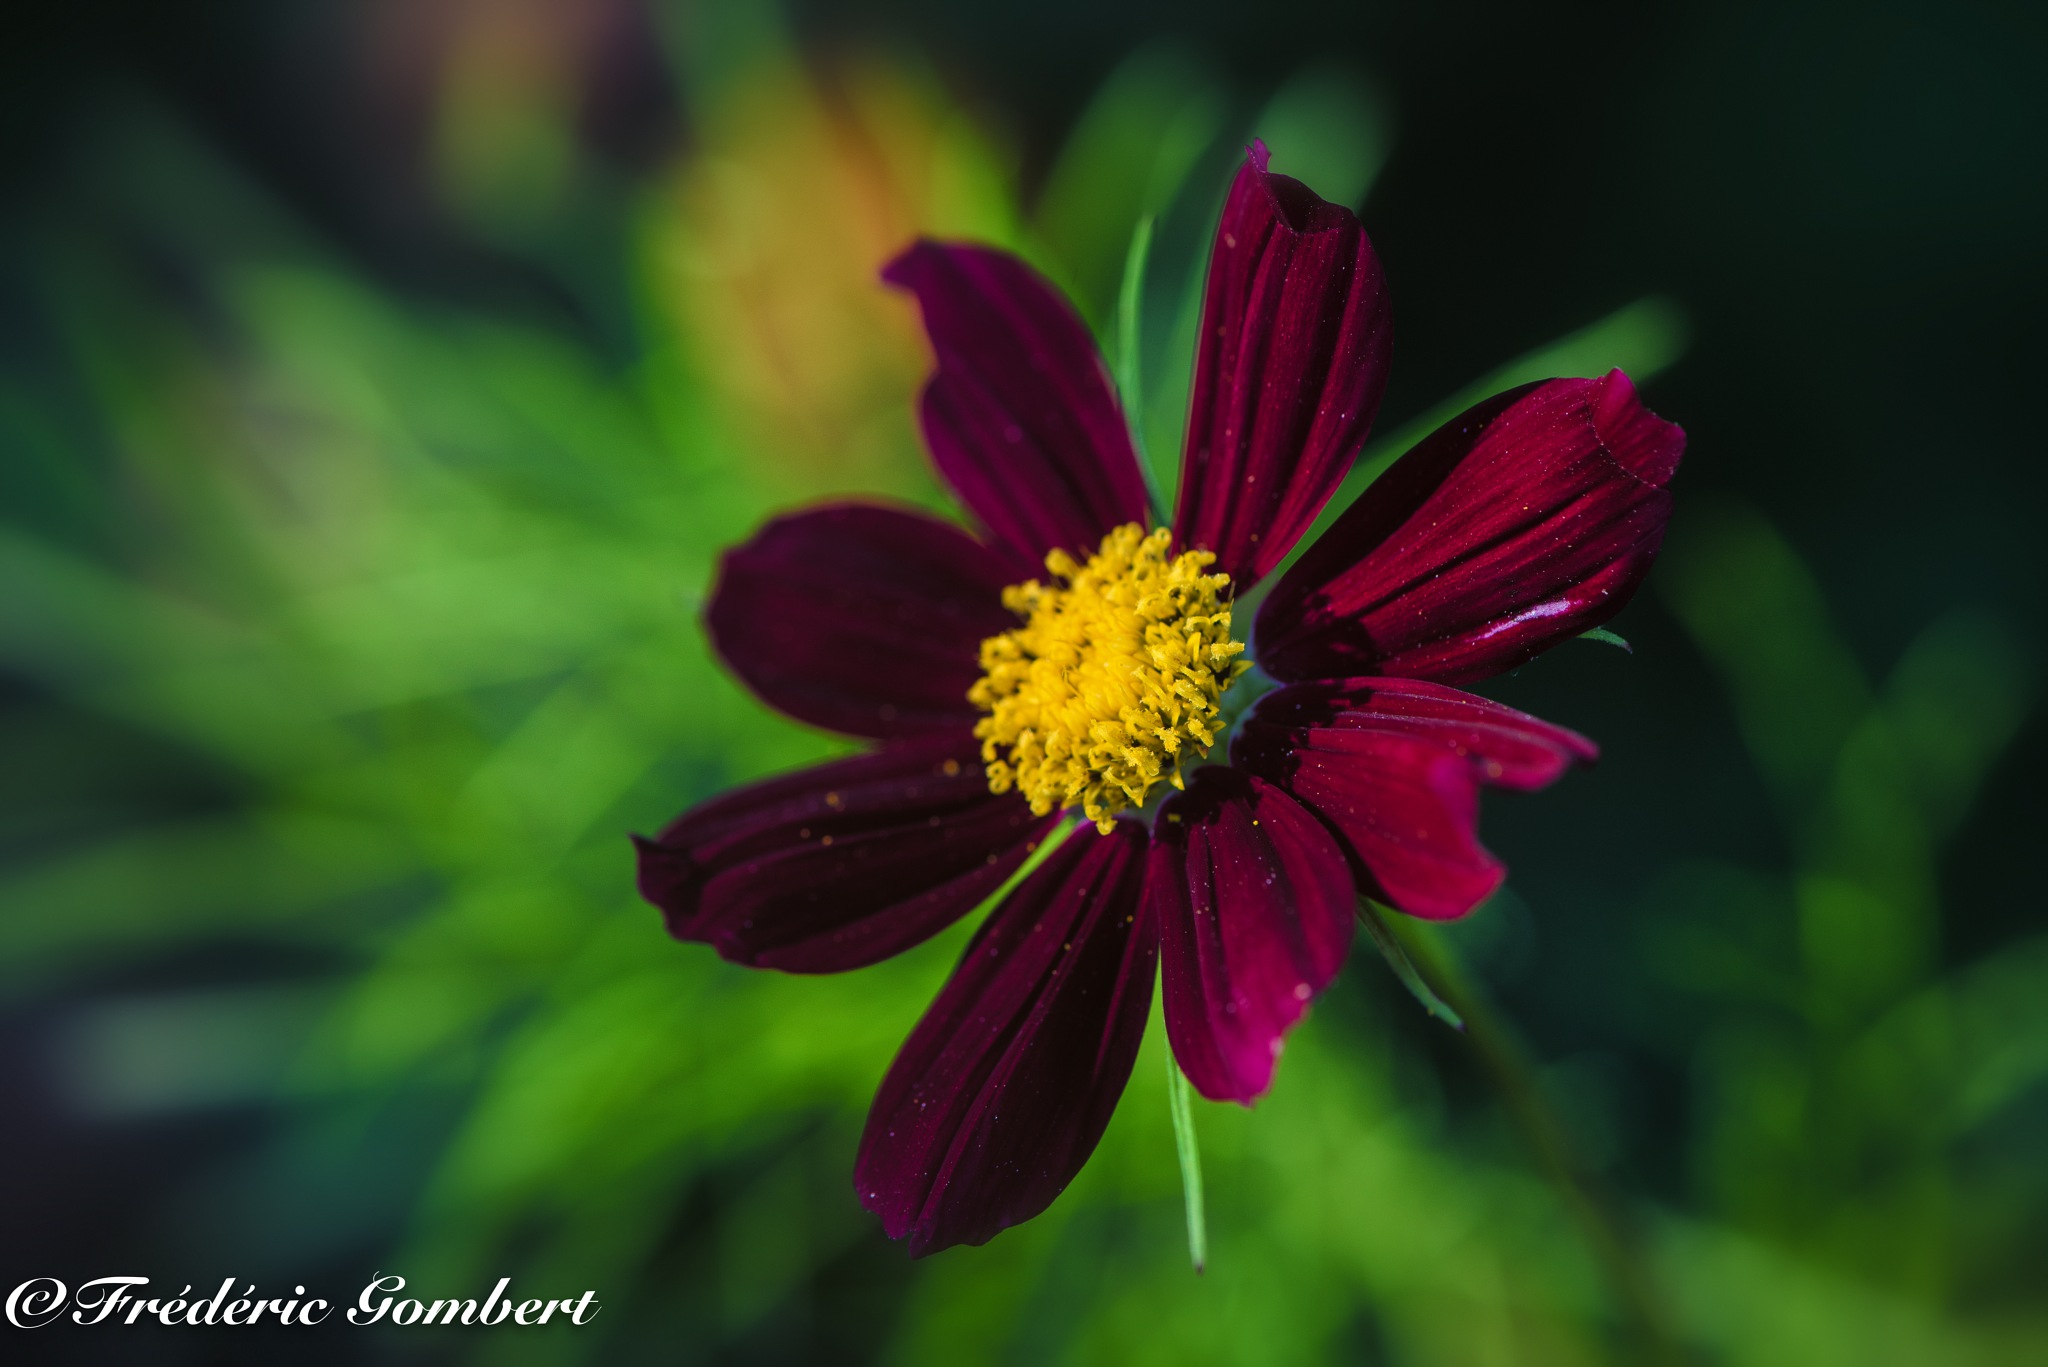 natural morning by Frederic Gombert